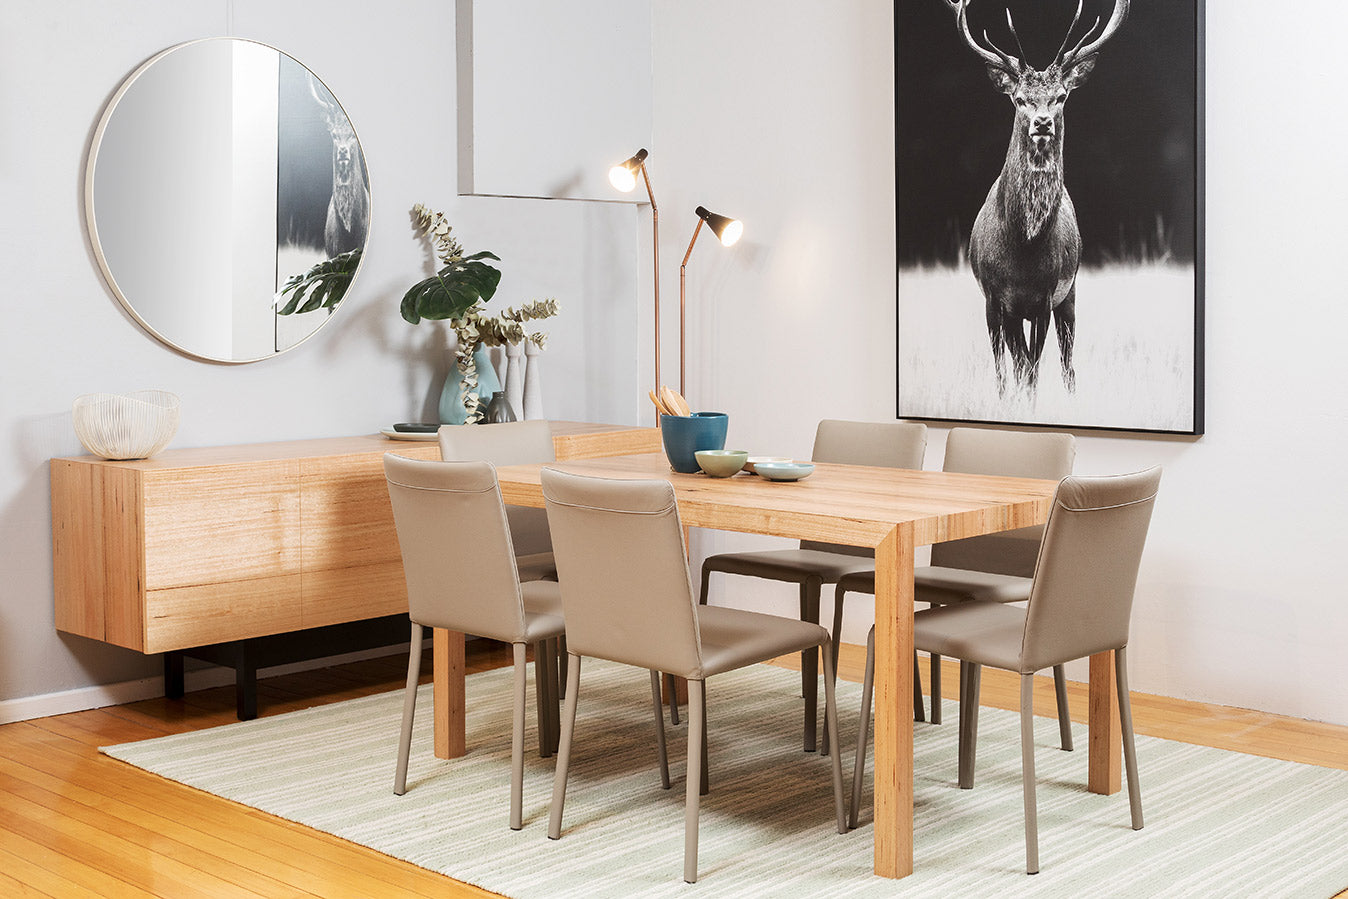 Buffet Centro Range Contemporary Living Mountain Victorian Ash Solid Timber Small Dining Table Setting Suite